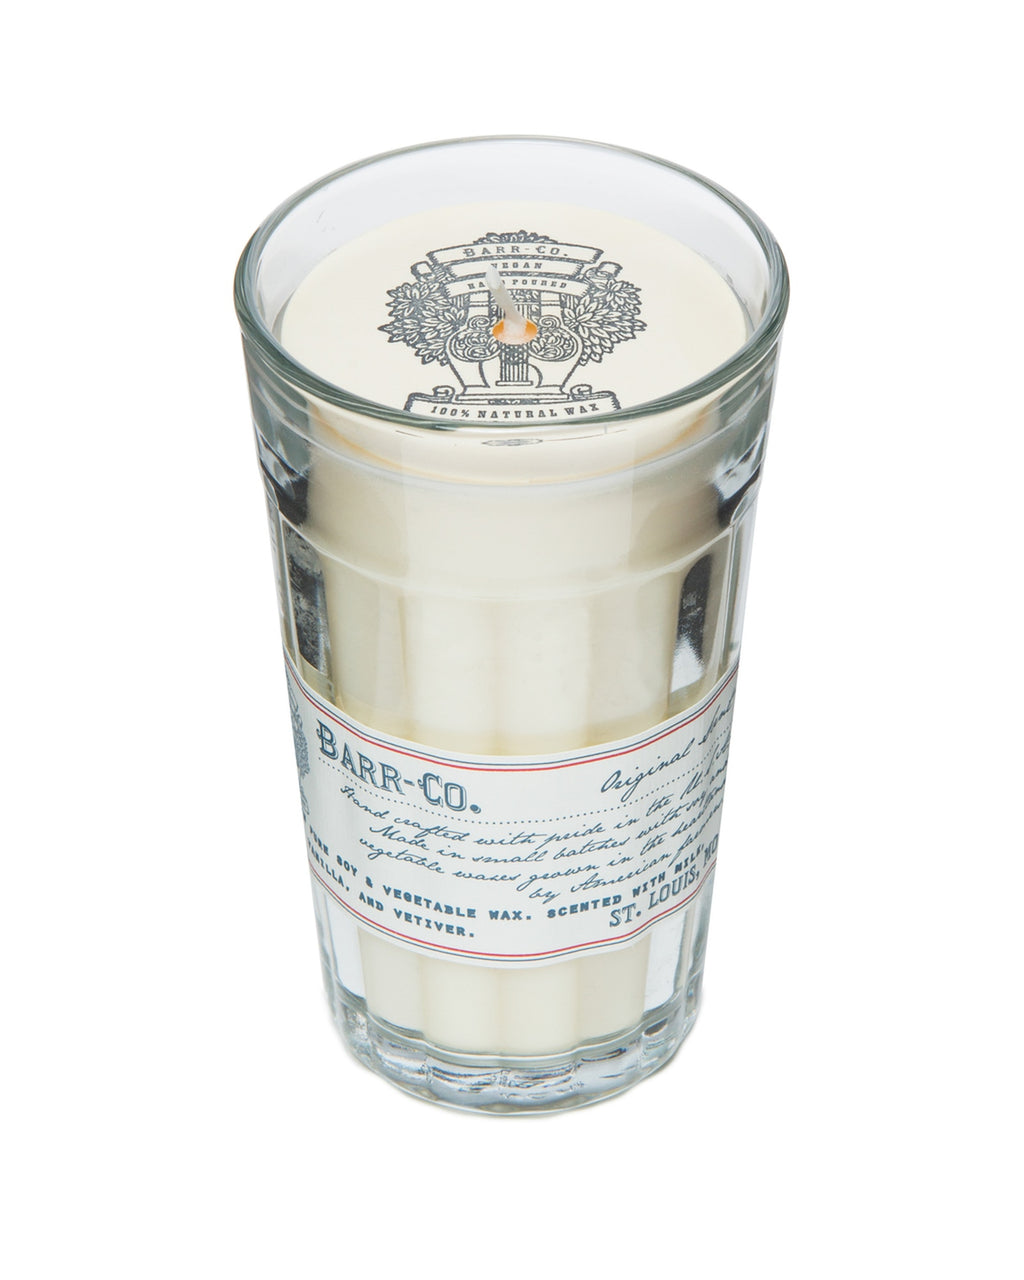 Barr-Co. 10oz Candle - Original Scent